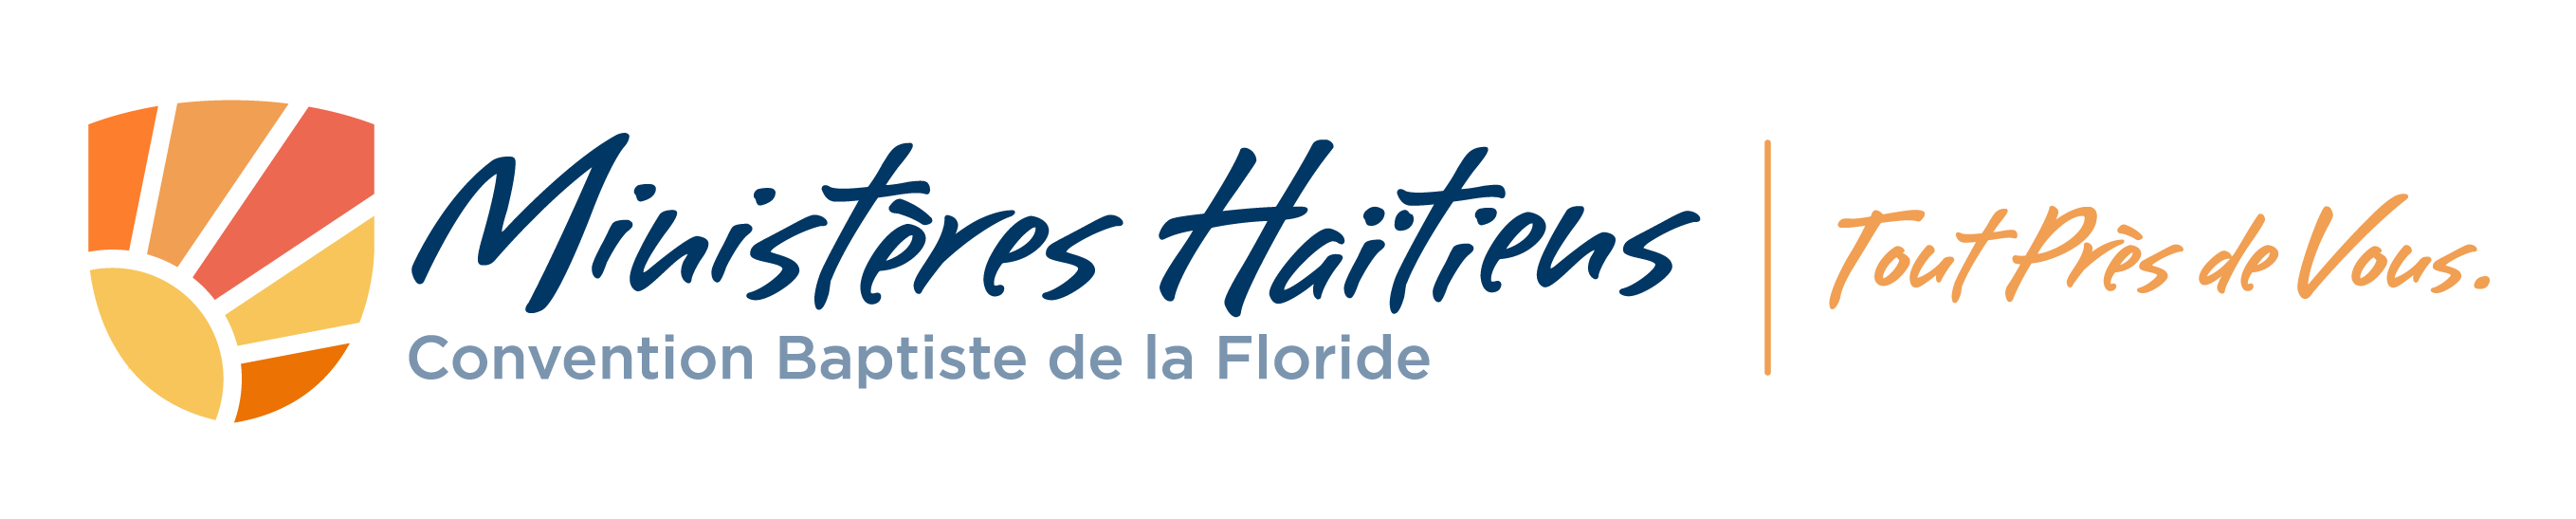 Florida Baptist Convention, Ministeres Haitiens